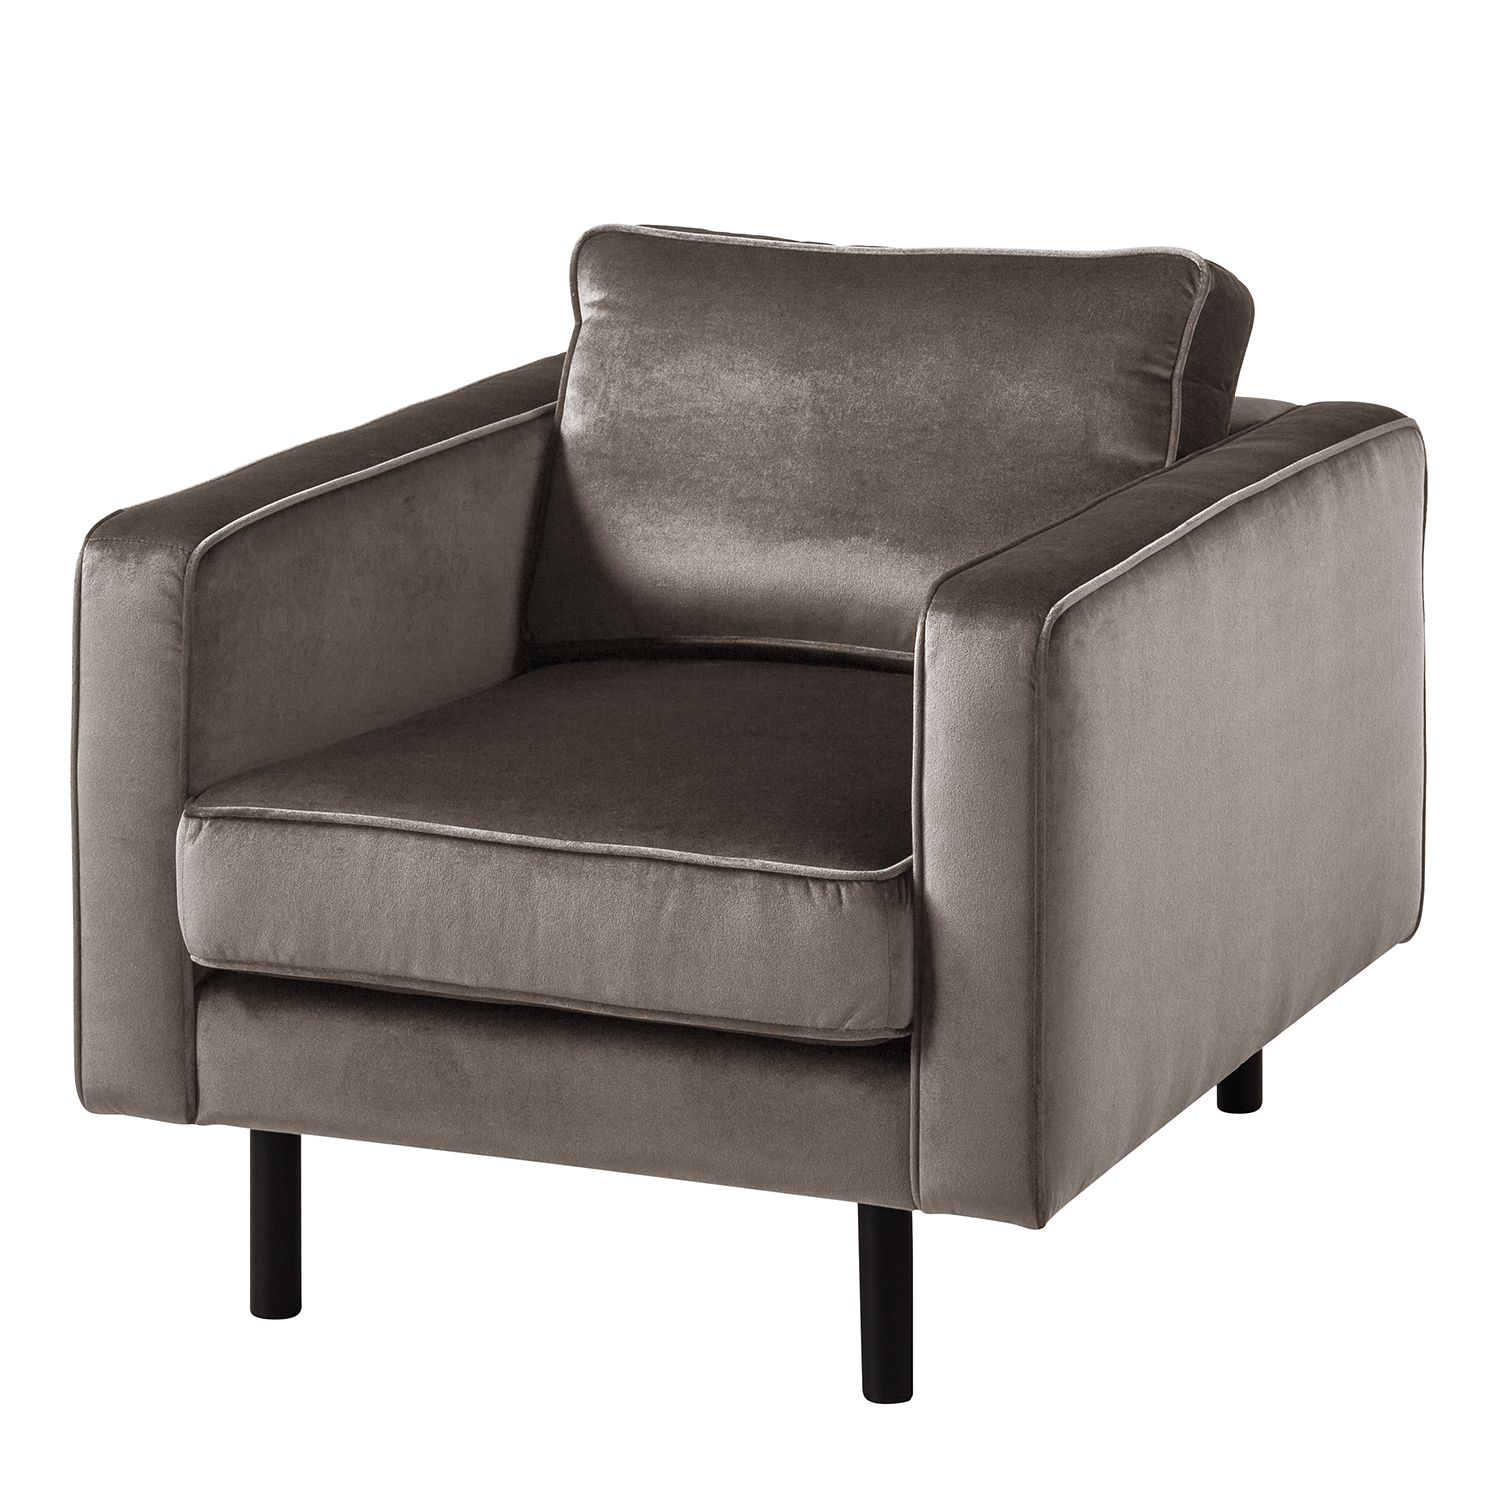 goedkoop Fauteuil Edina fluweel Nootmuskaat Eva Padberg Collection